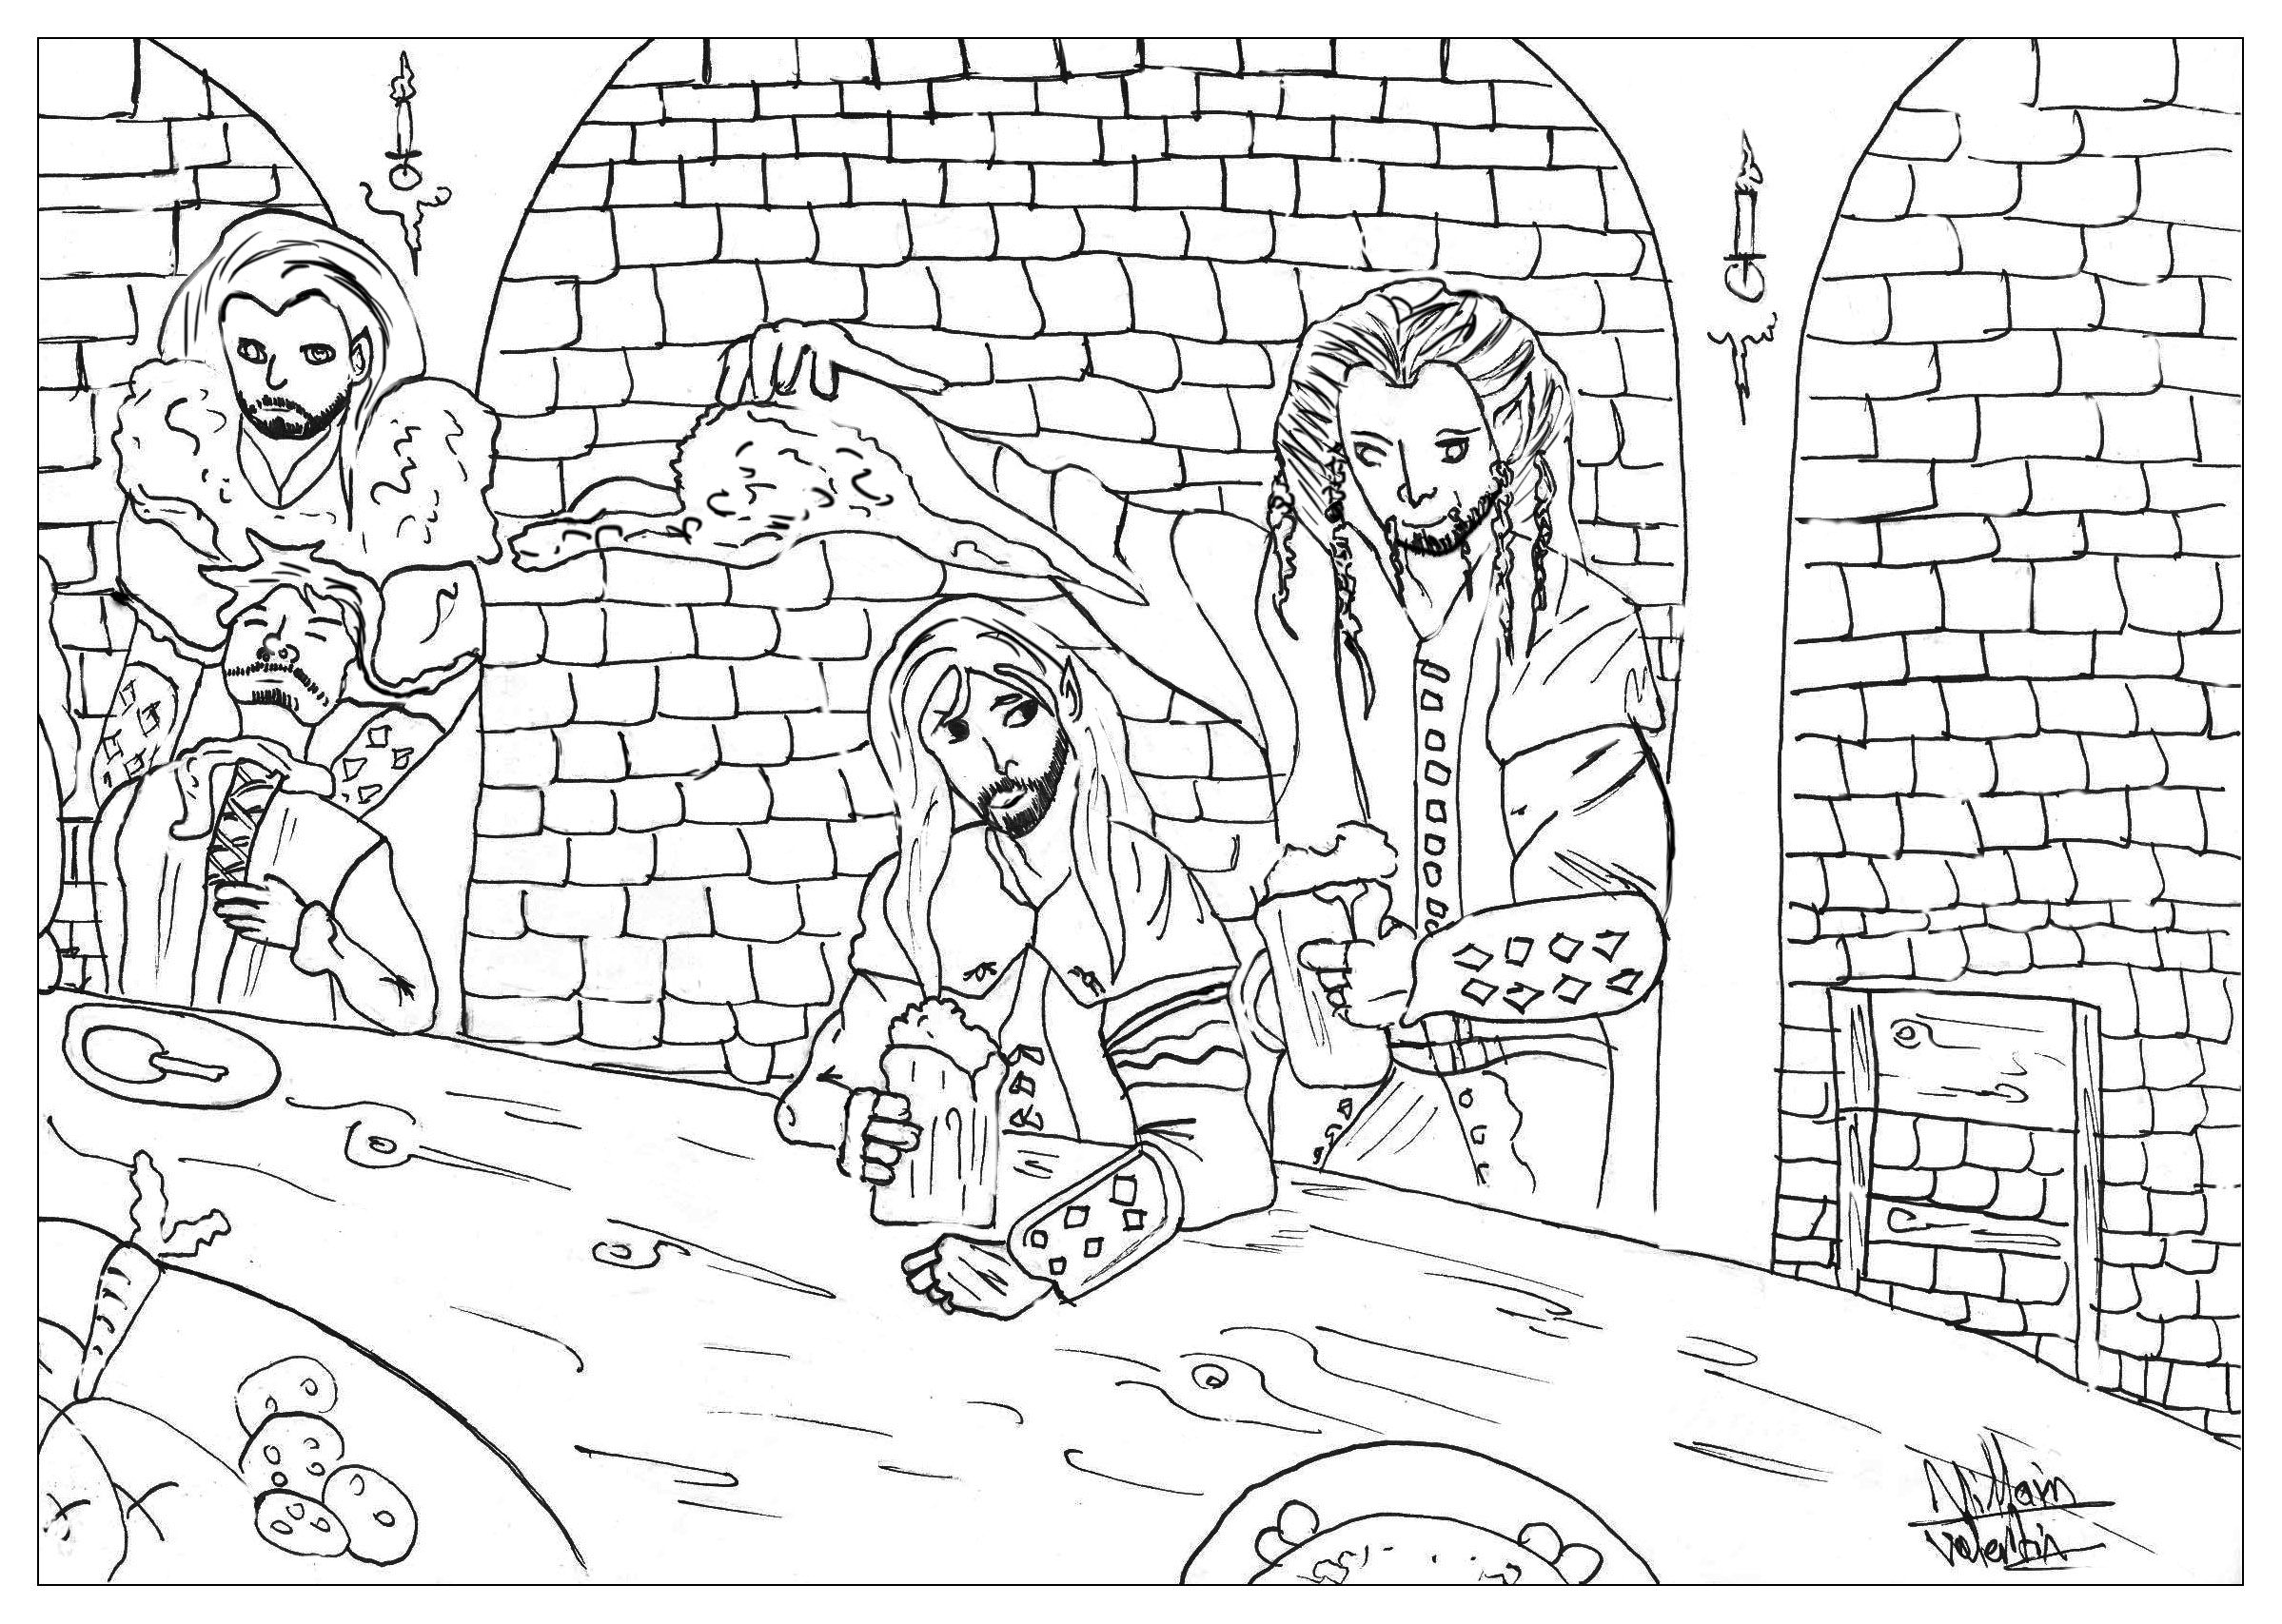 Hobbit1 - Myths & legends Adult Coloring Pages